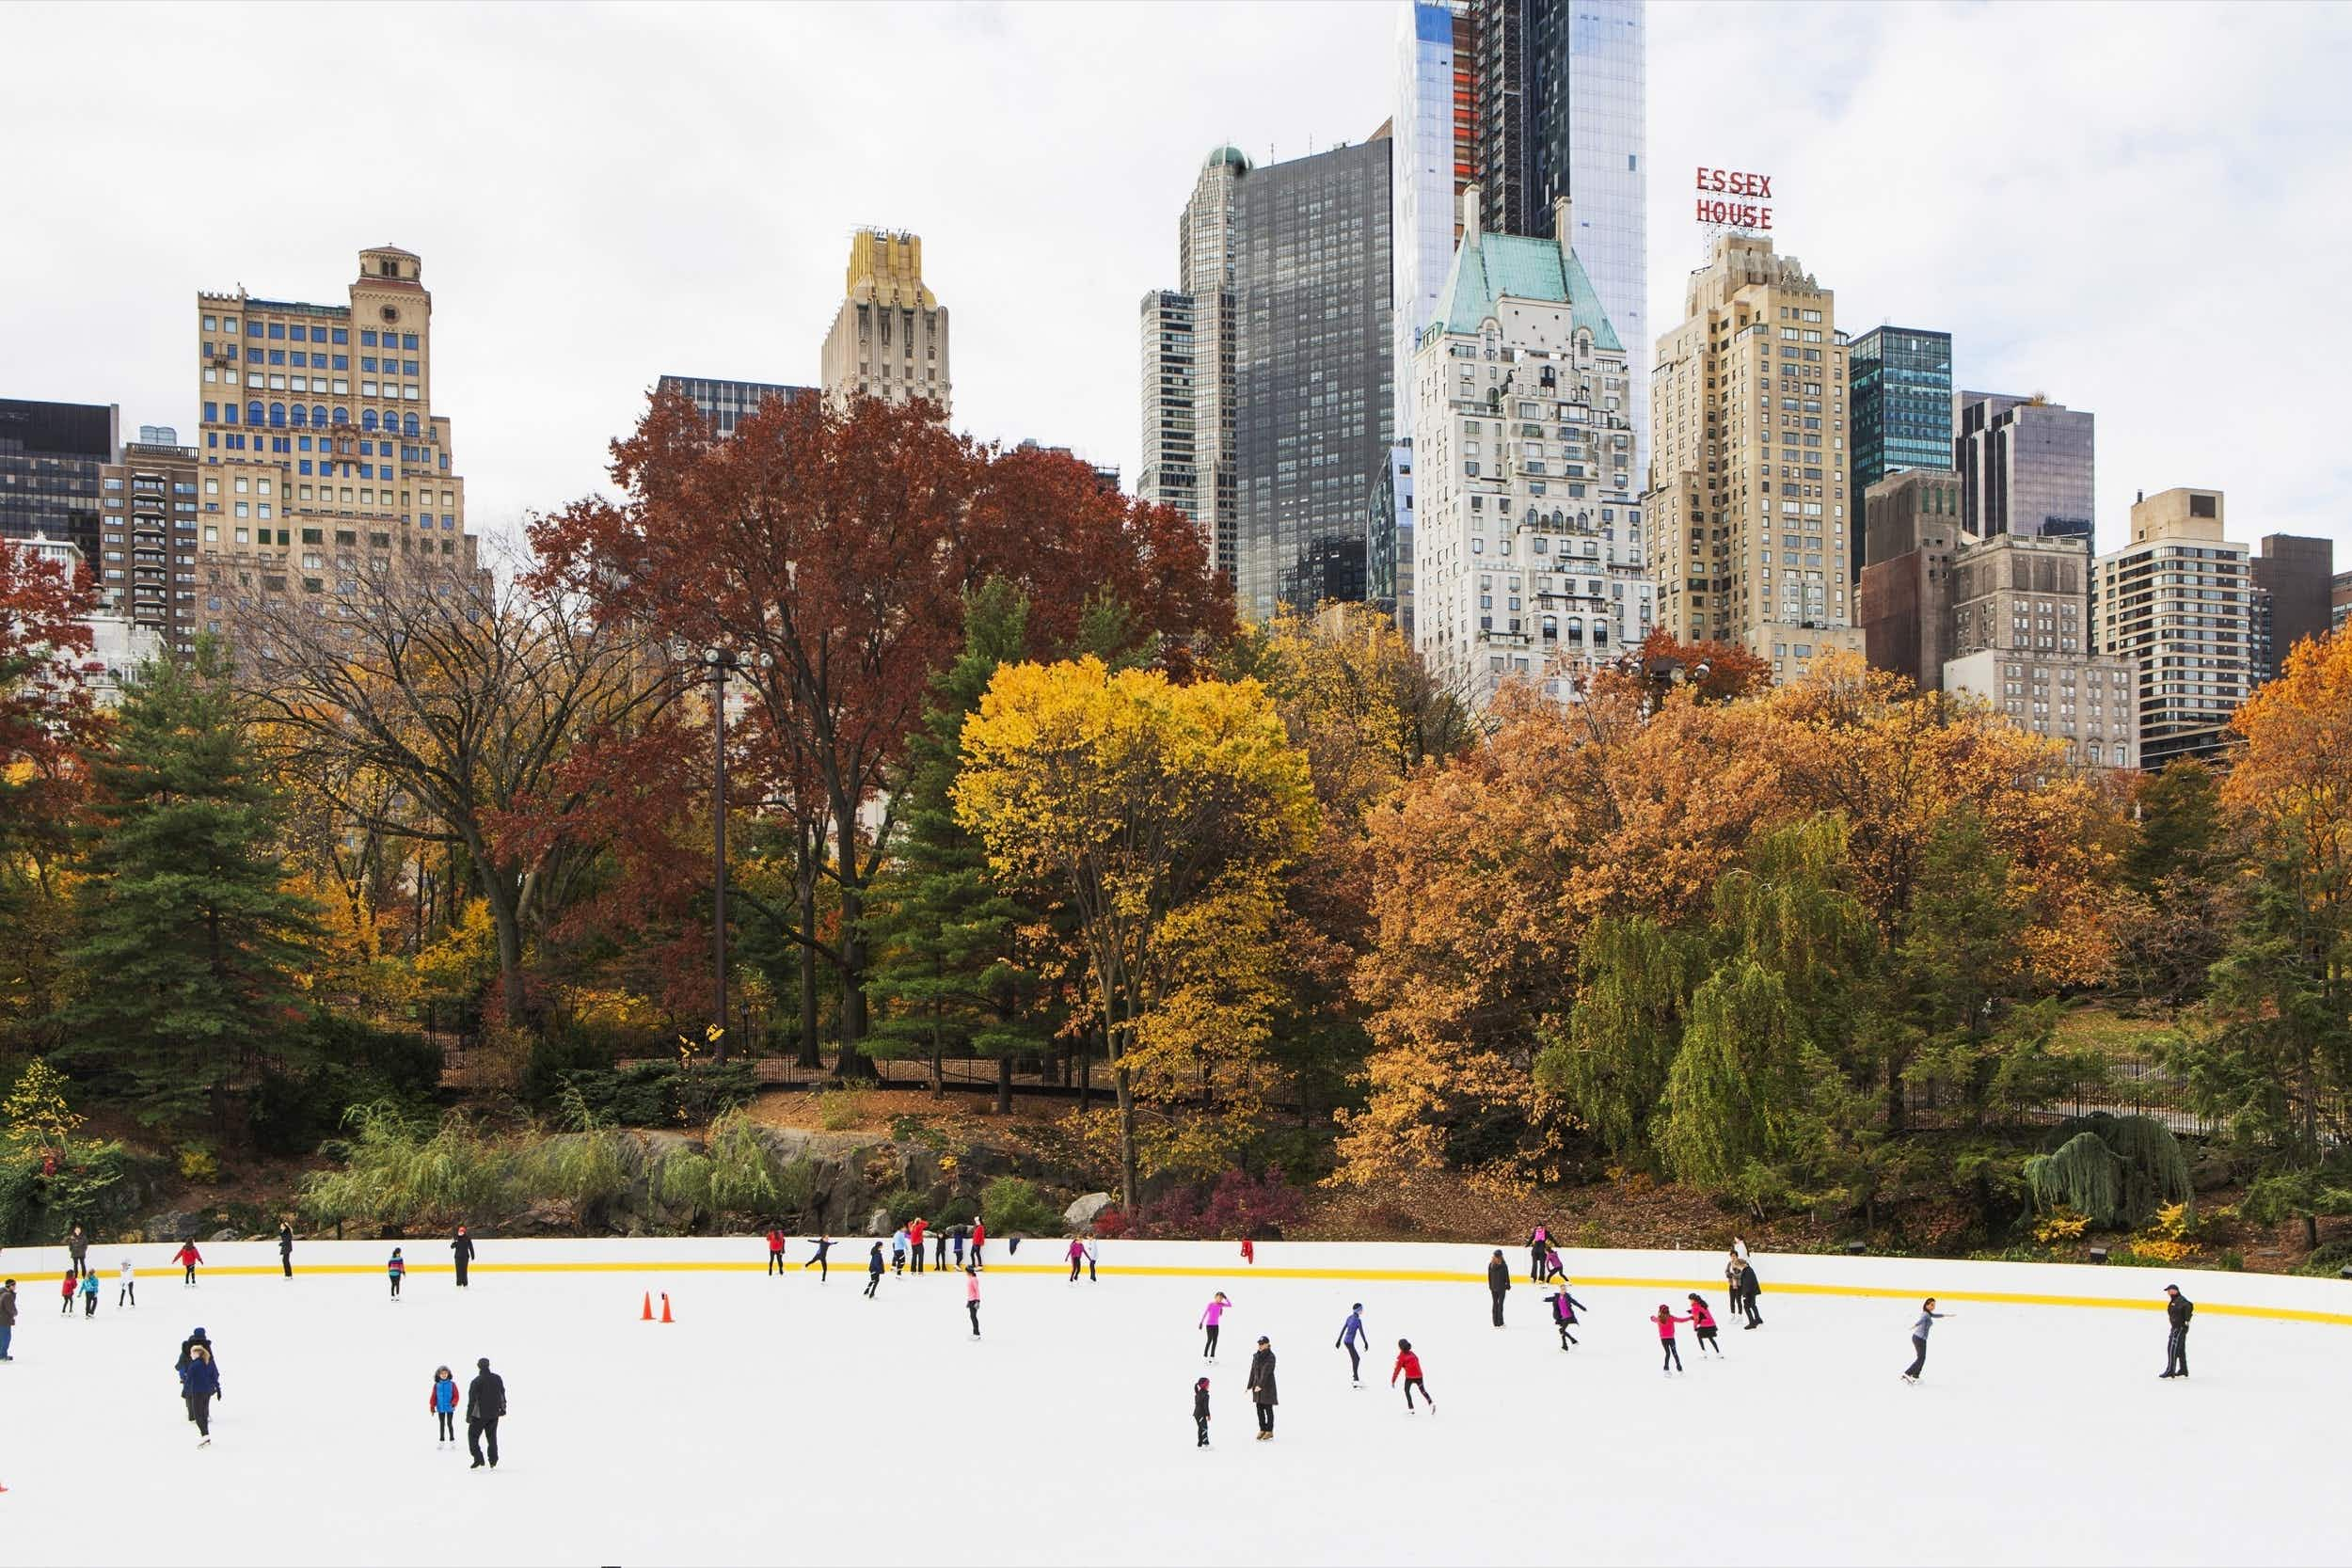 Winter is one of the best times to visit New York City for festivals, food and fun © mwillems / Getty Images